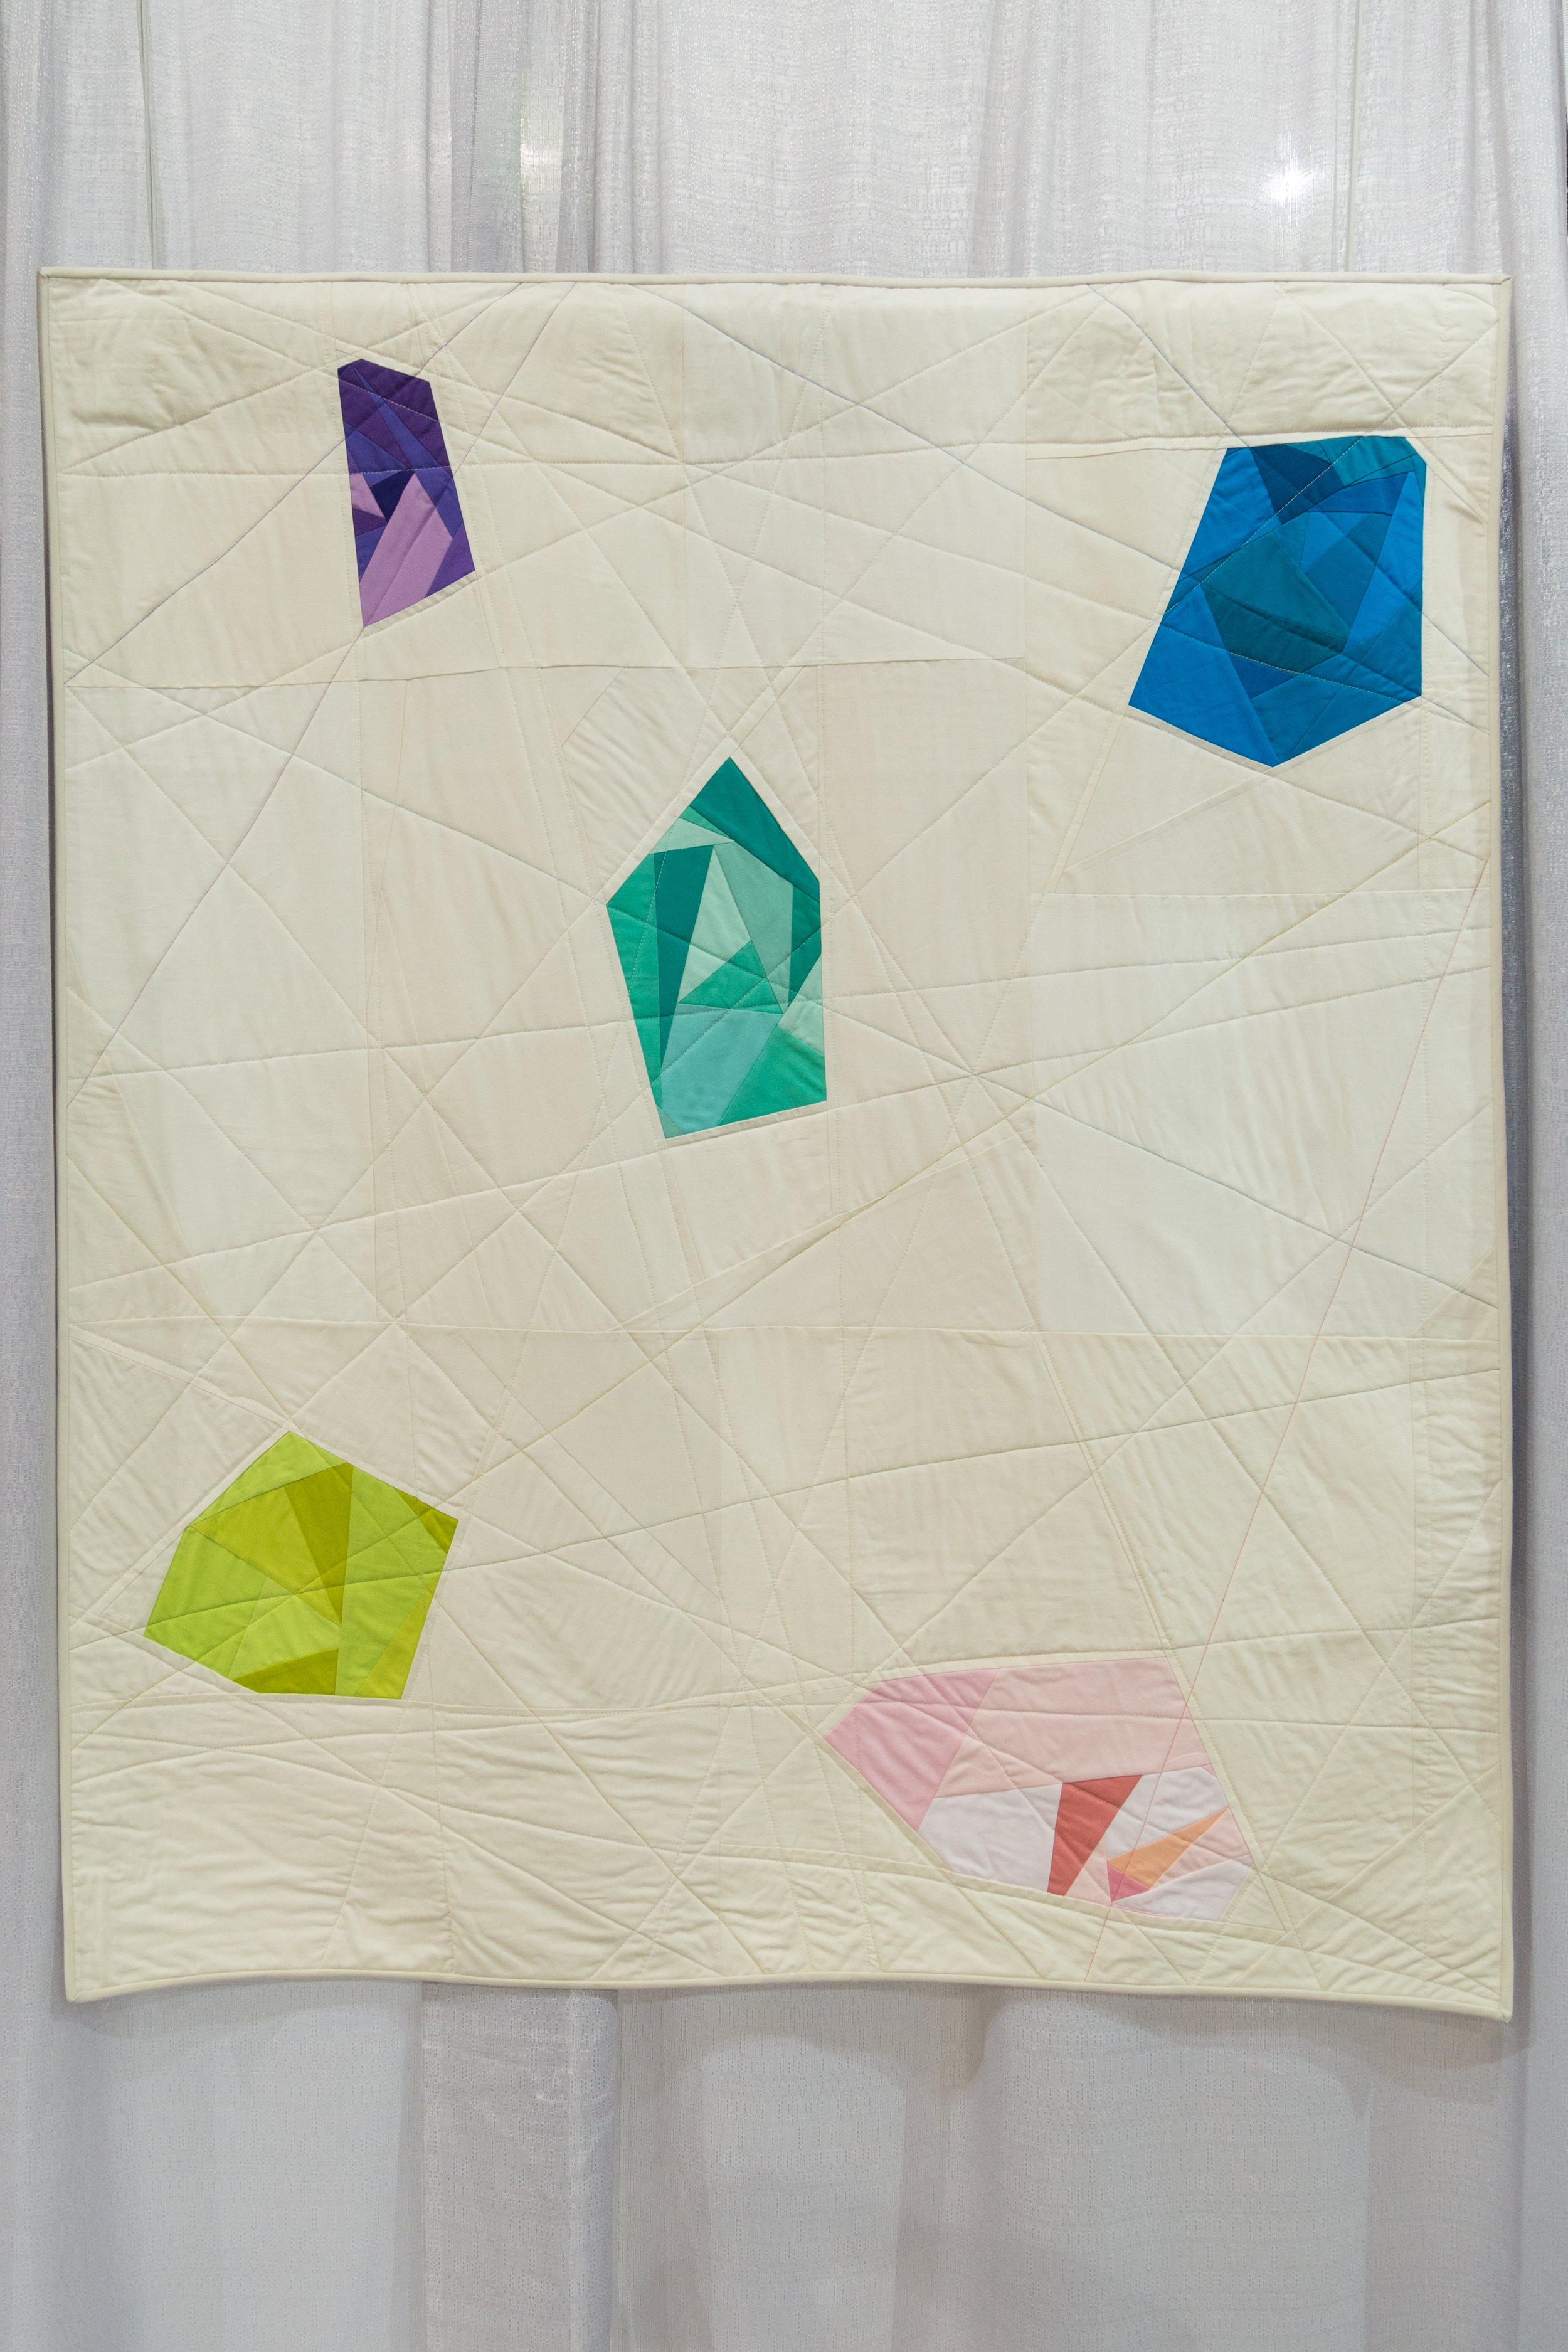 "1st Place: Gemstones  45"" x 53"" Pieced and quilted by Lilianna Kehnle Monroe, New York, United States  Individual MQG Member"